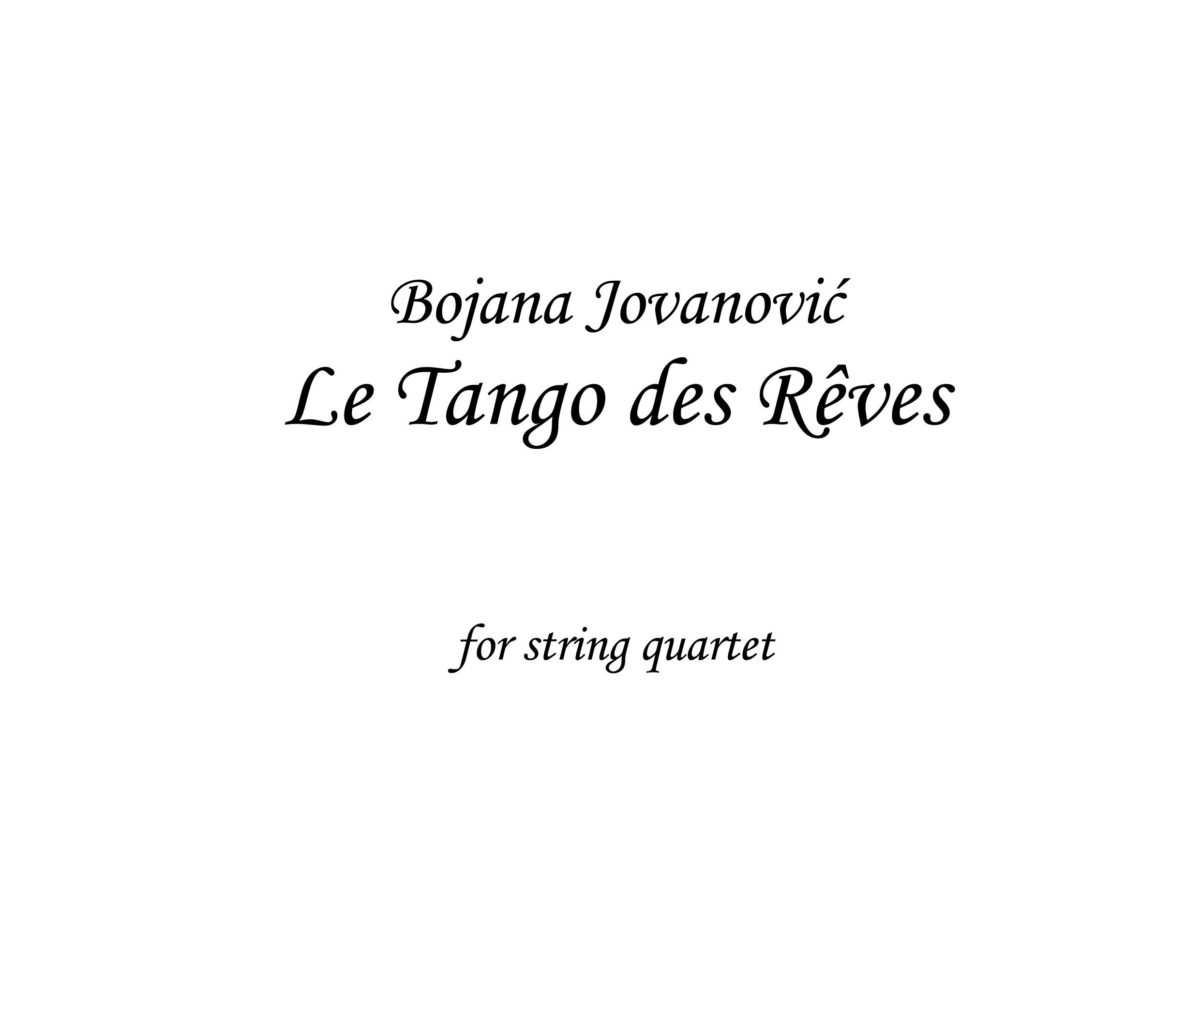 Le Tango des Reves (Bojana Jovanovic) - Sheet Music